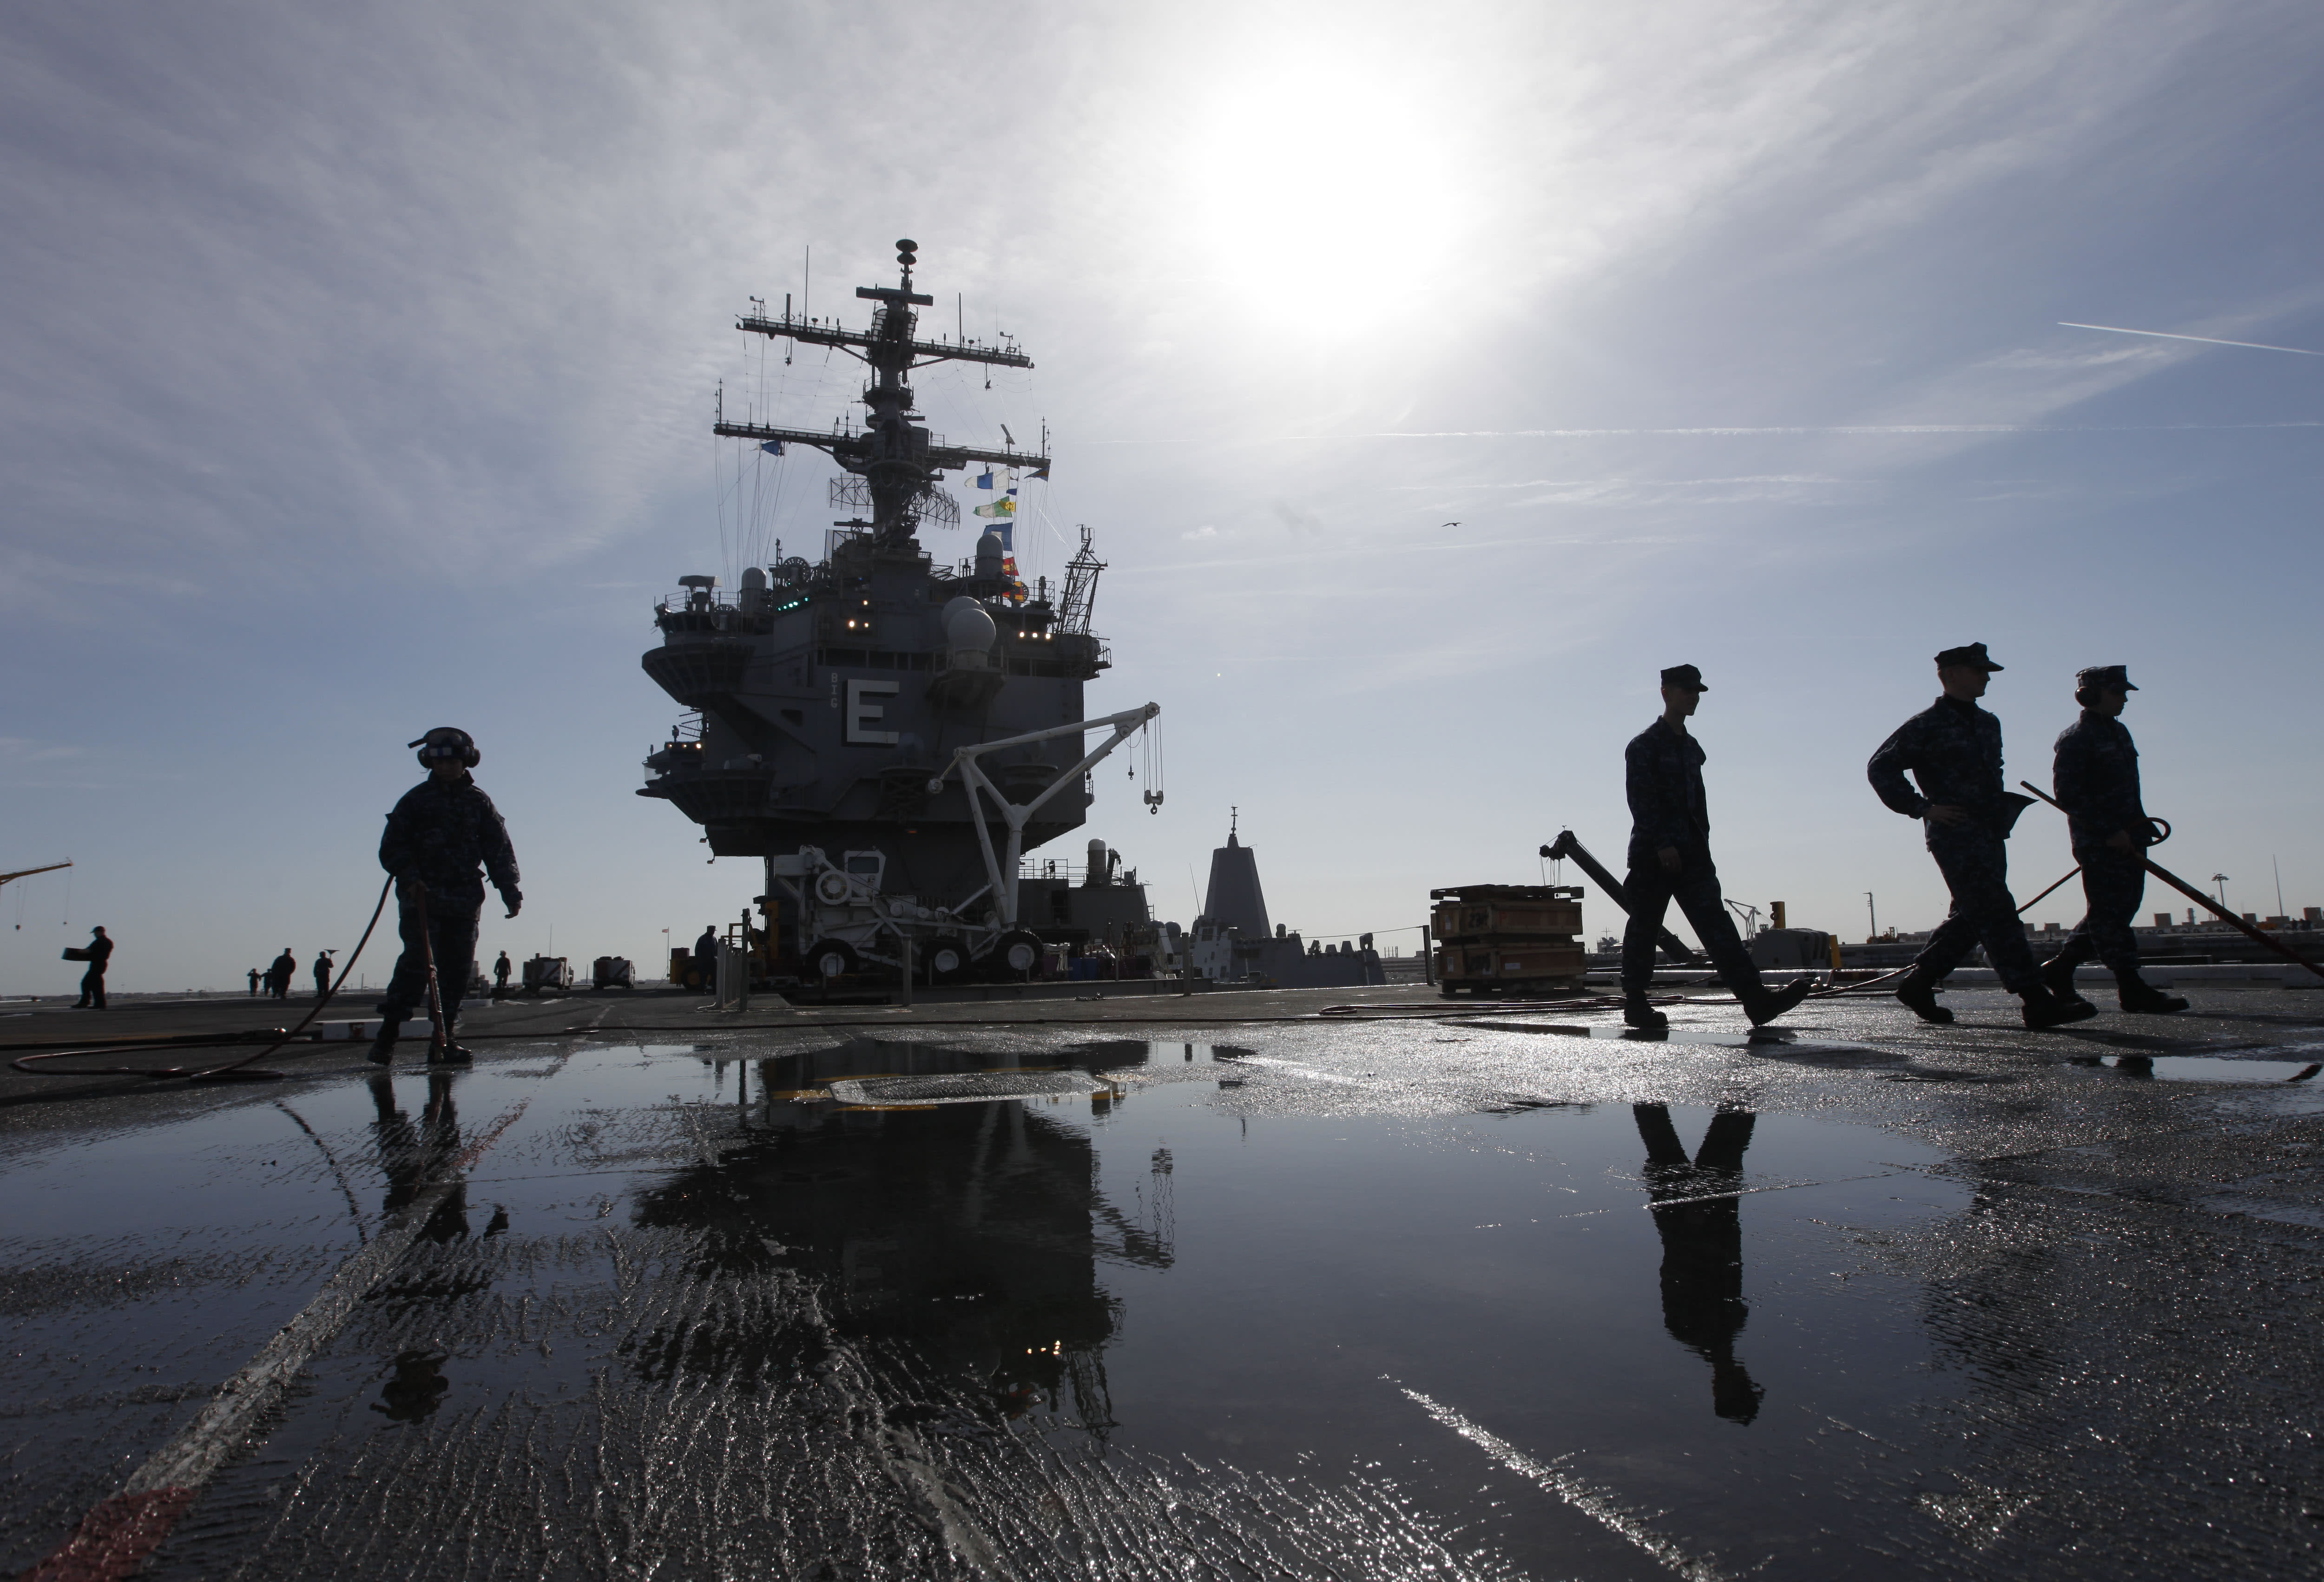 FILE - In this March 8, 2012 file photo, sailors clean the flight deck as they move supplies and equipment in preparation for the final deployment of the nuclear aircraft carrier USS Enterprise at the Norfolk Naval Station in Norfolk, Va. The U.S. Navy said Monday, April 9, 2012 that it has deployed a second aircraft carrier to the Persian Gulf region amid rising tensions with Iran over its nuclear program. The deployment of the nuclear-powered USS Enterprise along the Abraham Lincoln carrier strike group marks only the fourth time in the past decade that the Navy has had two aircraft carriers operating at the same time in the Persian Gulf and the Arabian Sea, said Cmdr. Amy Derrick-Frost of the Bahrain-based 5th Fleet. (AP Photo/Steve Helber, File)